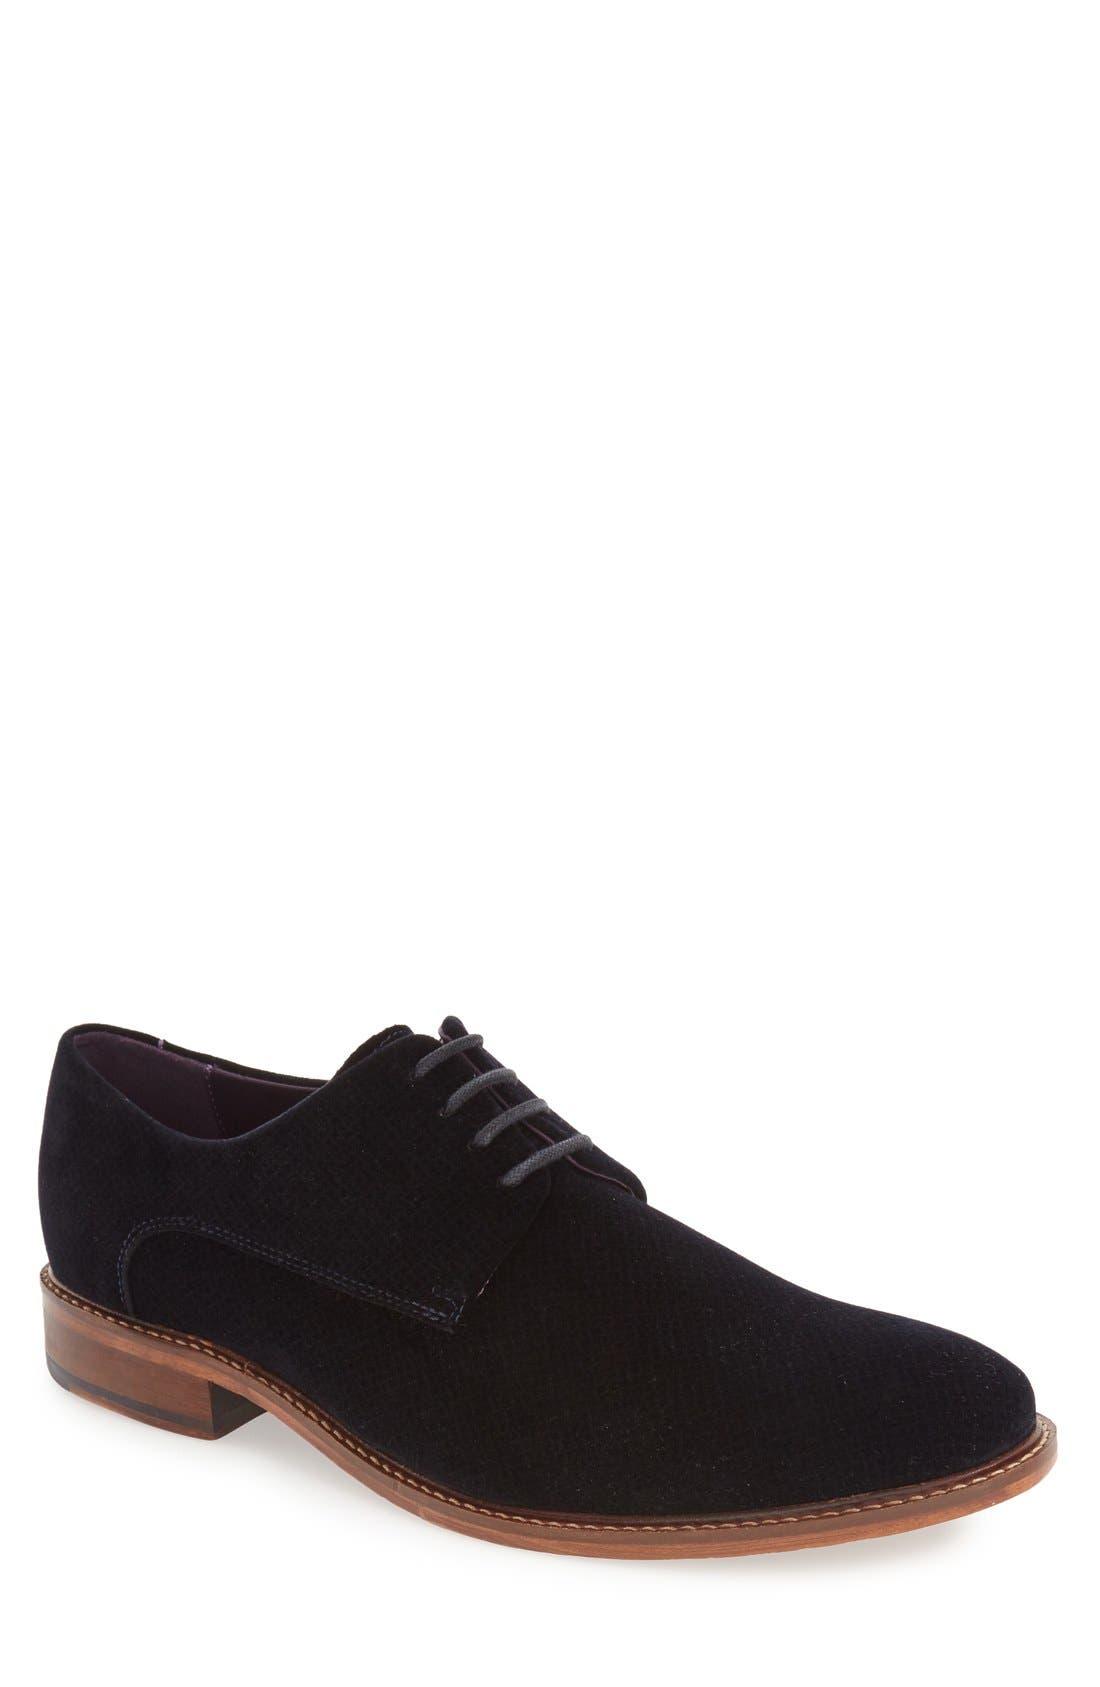 'Nierro' Plain Toe Derby,                         Main,                         color, Dark Blue